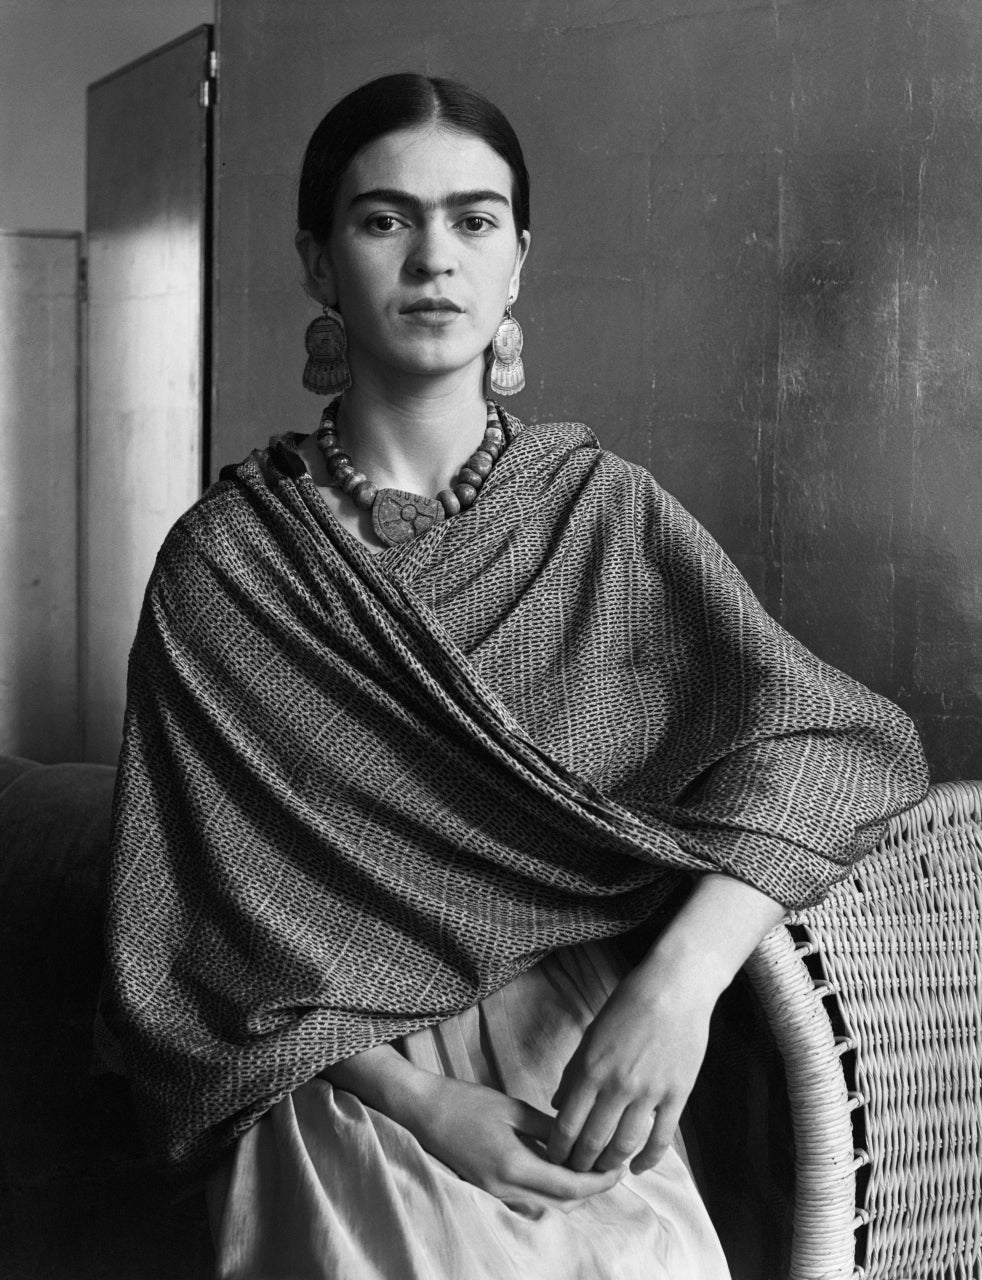 Imogen Cunningham Black and White Photograph - Frida Kahlo Rivera, Painter and Wife of Diego Rivera